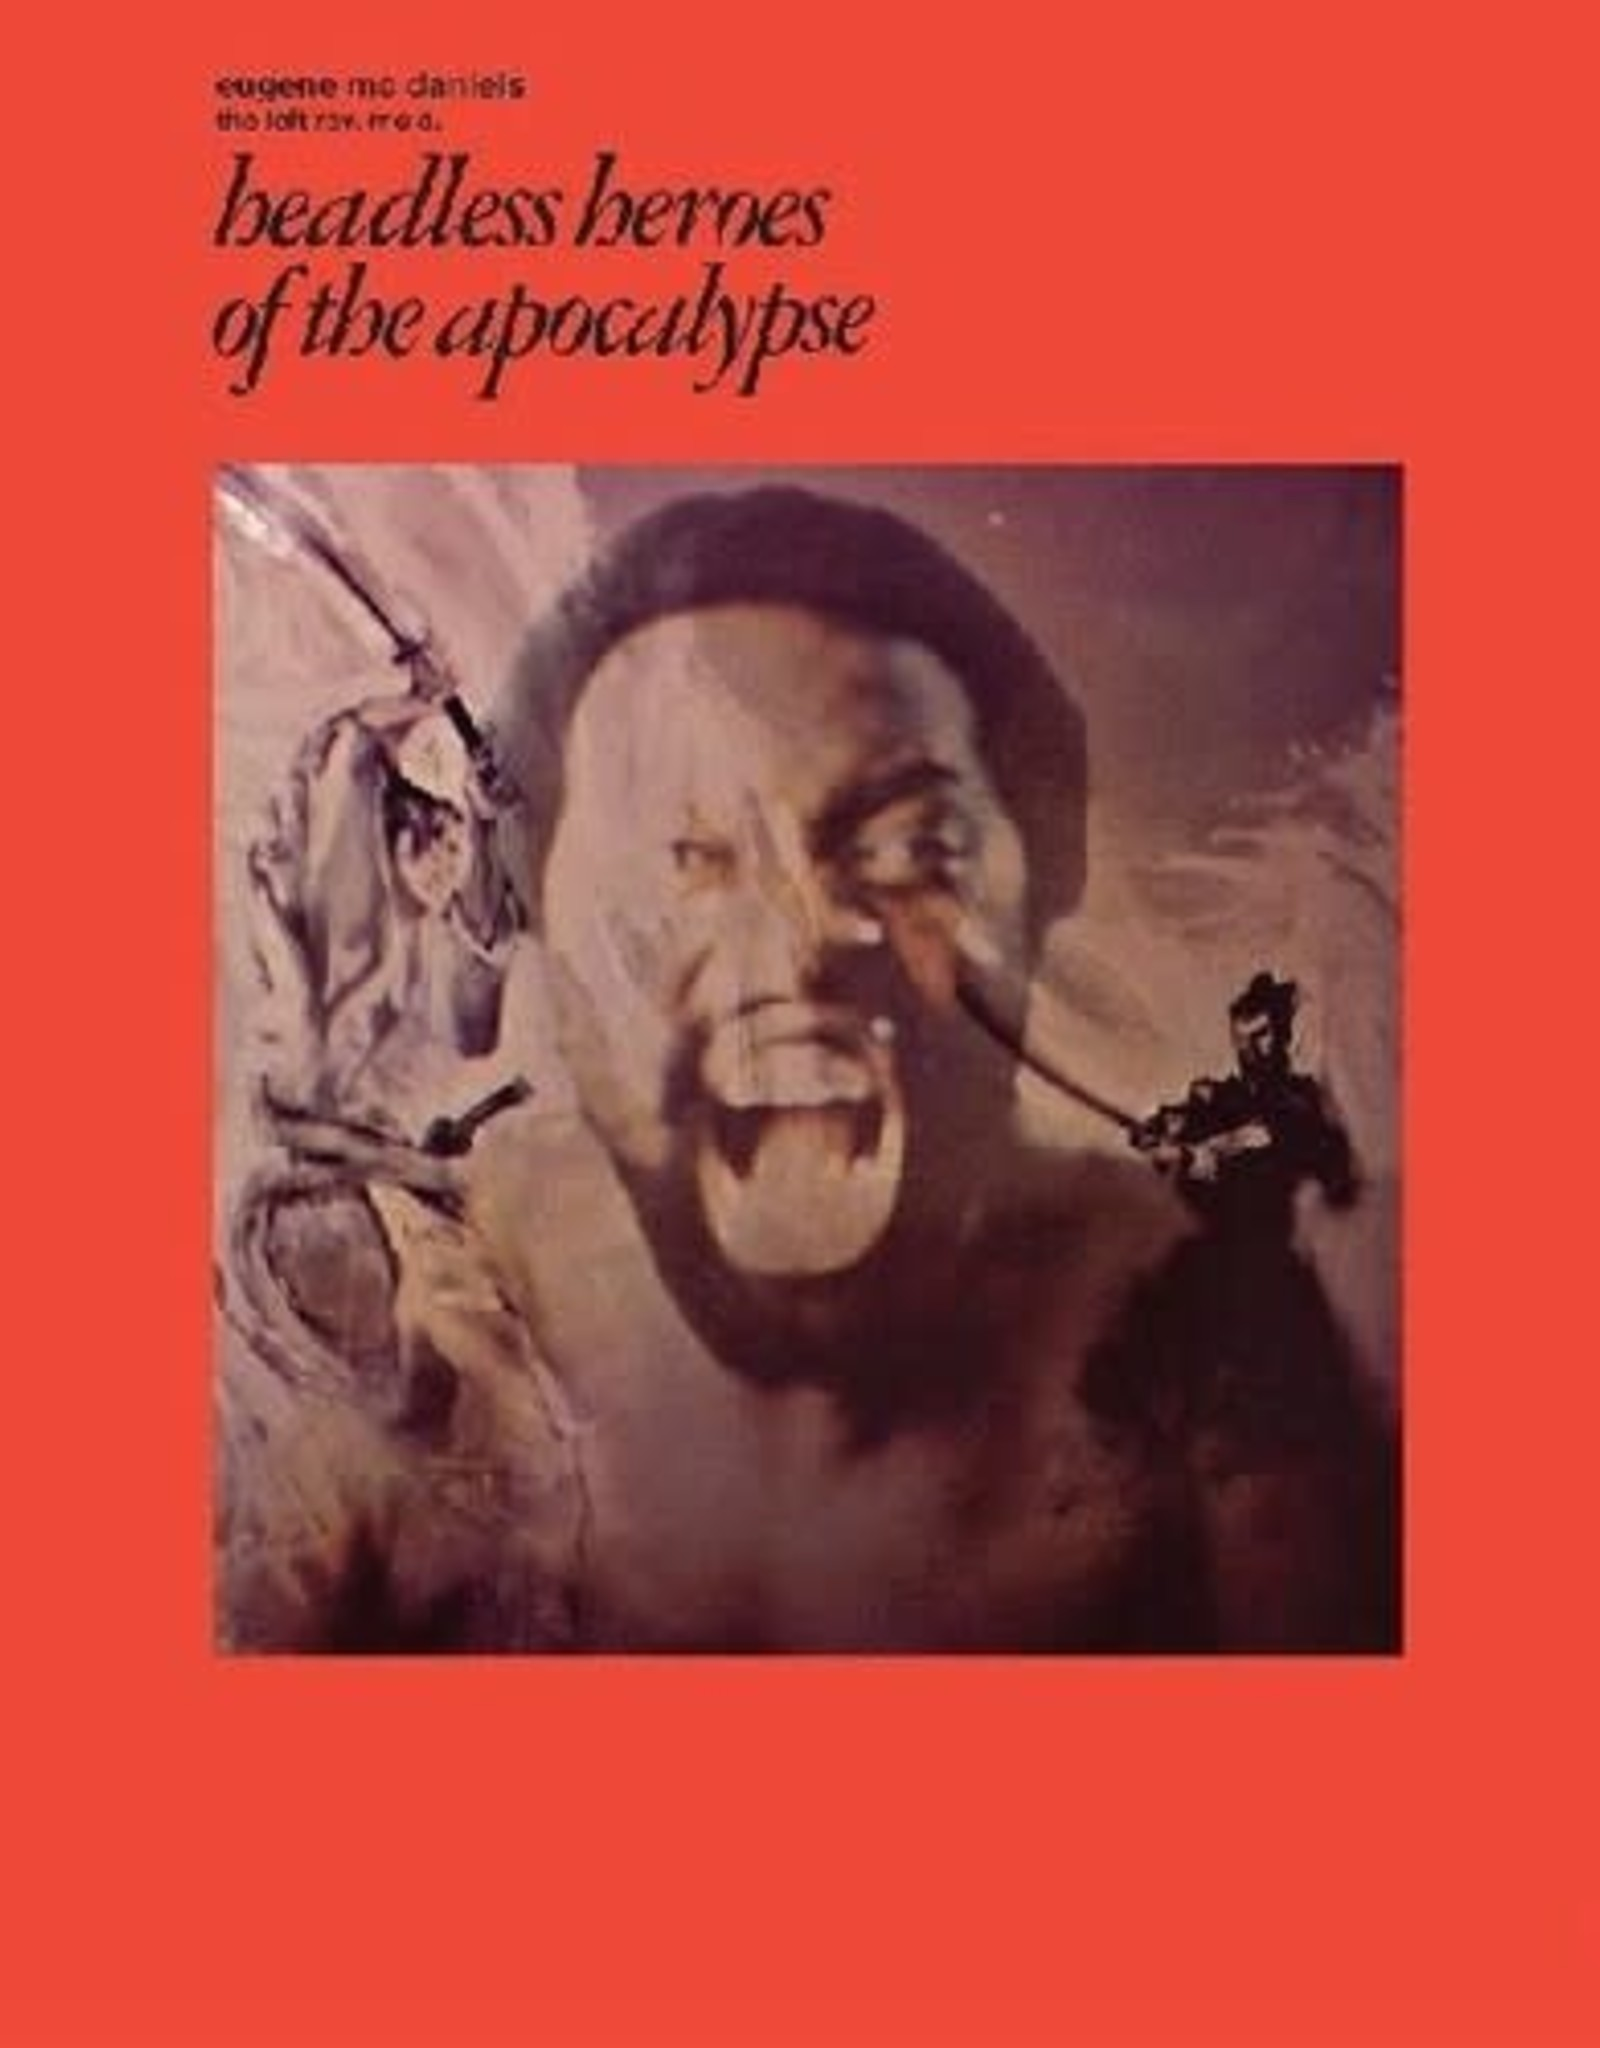 Eugene McDaniels - Headless Heroes Of The Apocalypse (Limited Edition, Purple Vinyl, Anniversary Edition)